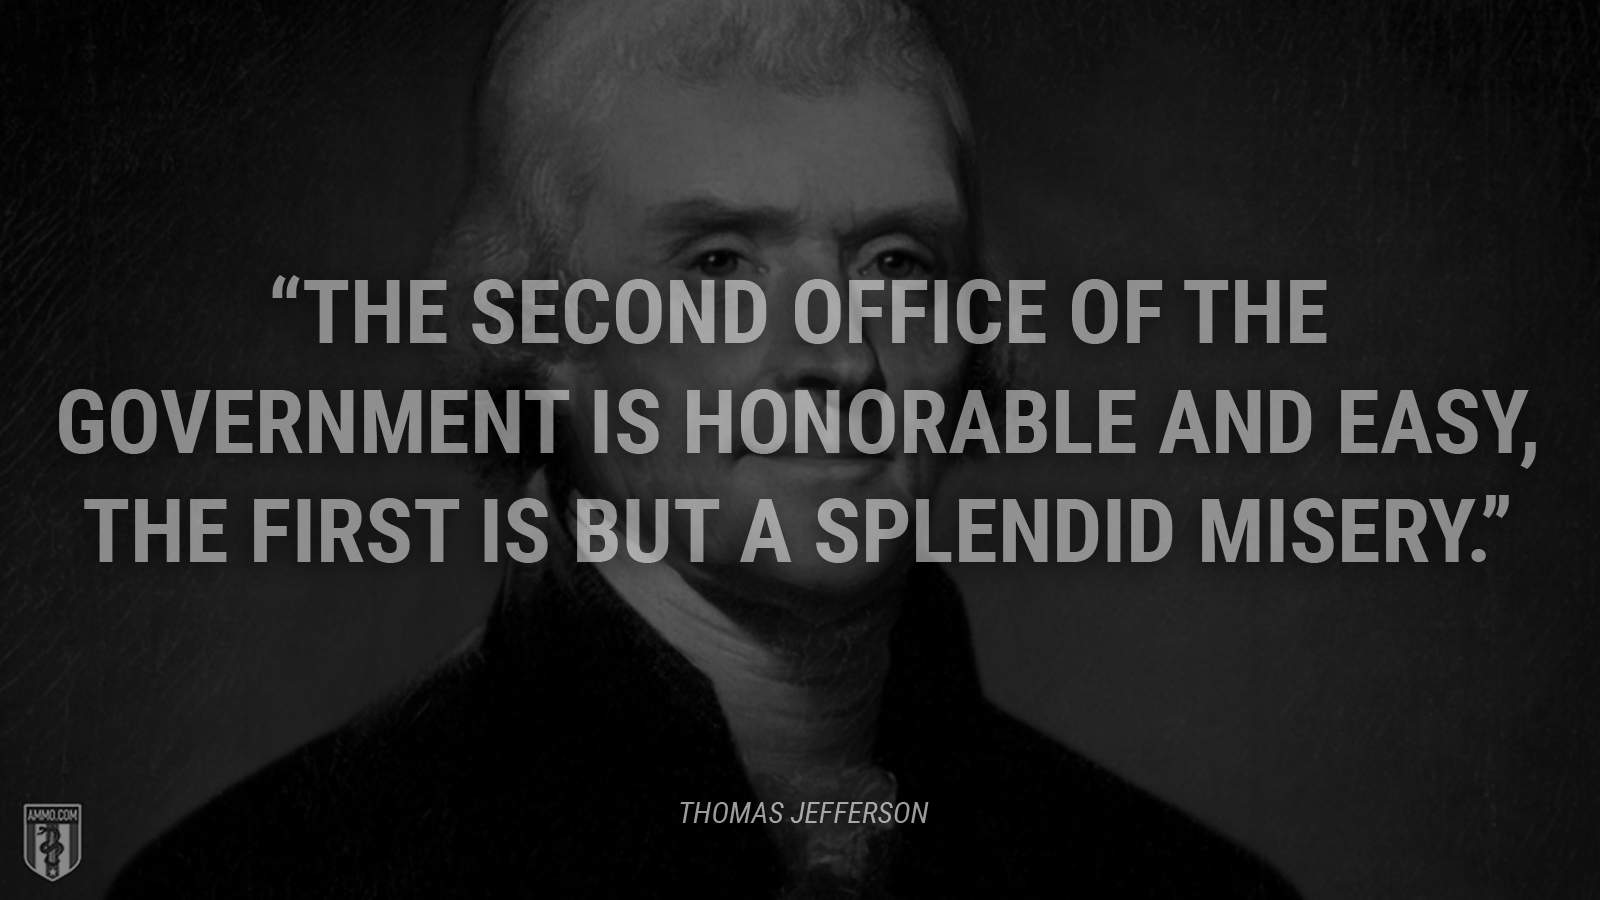 """The second office of the government is honorable and easy, the first is but a splendid misery."" - Thomas Jefferson"